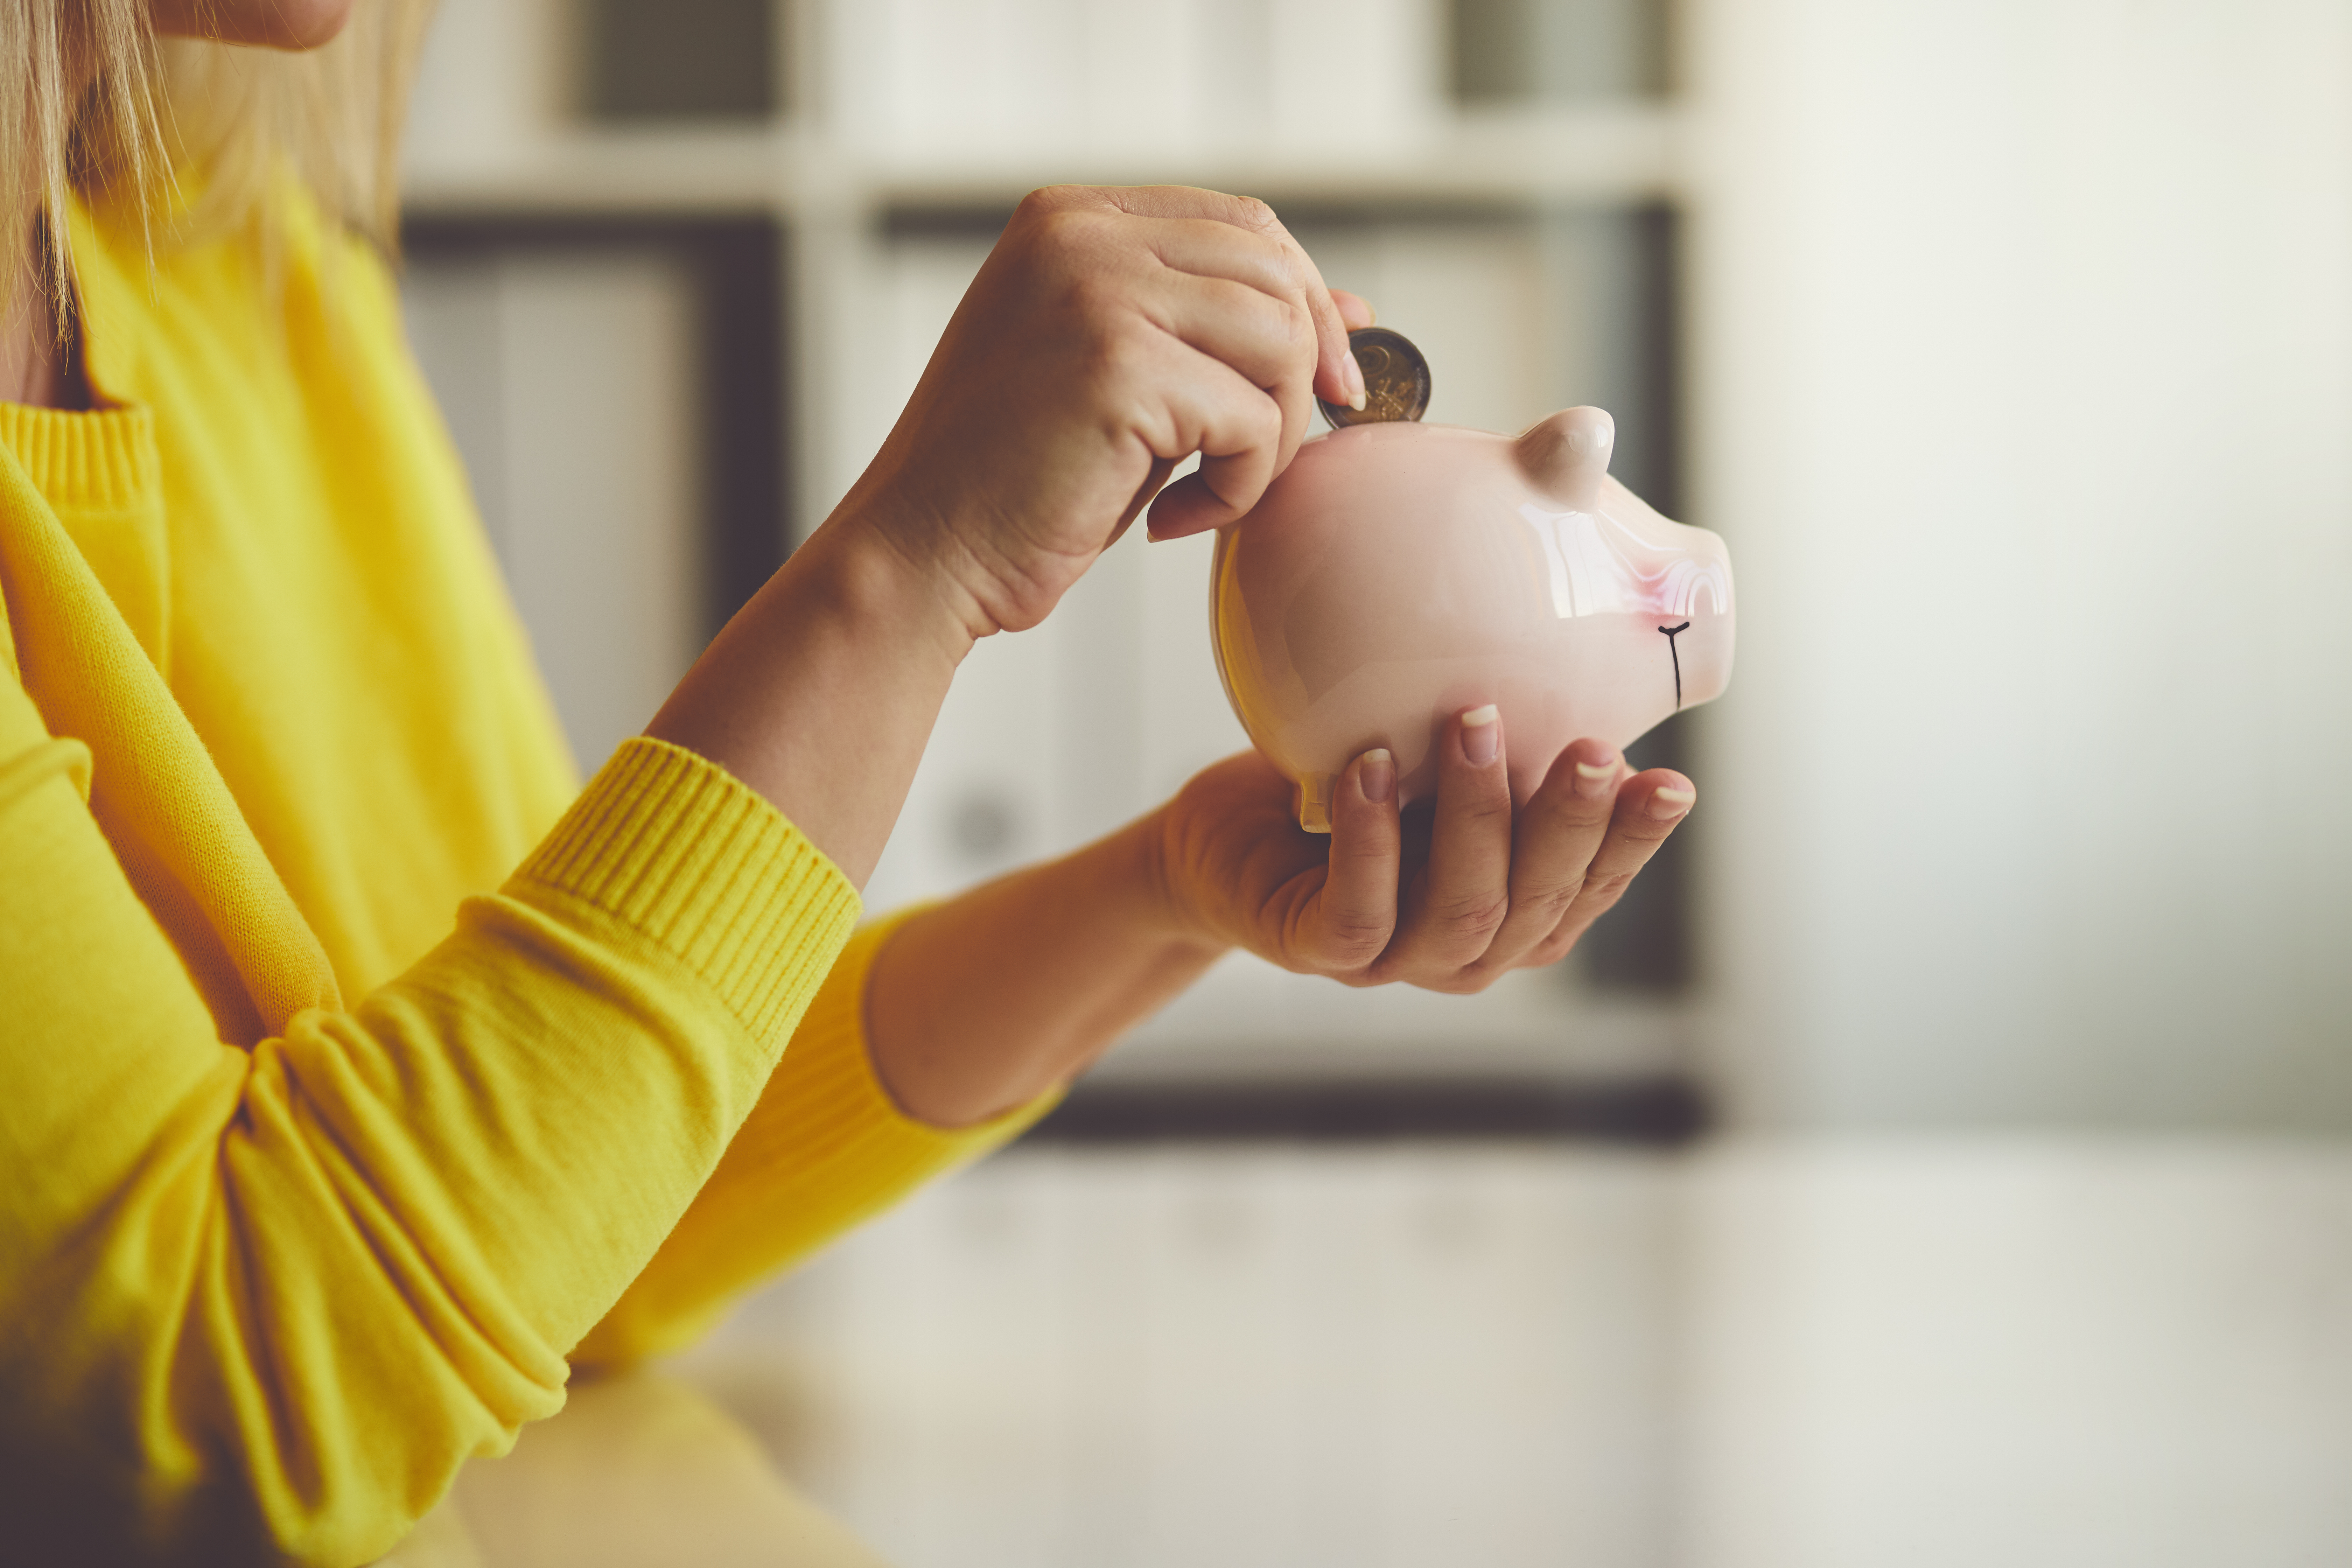 Woman inserts a coin into a piggy bank, toned image